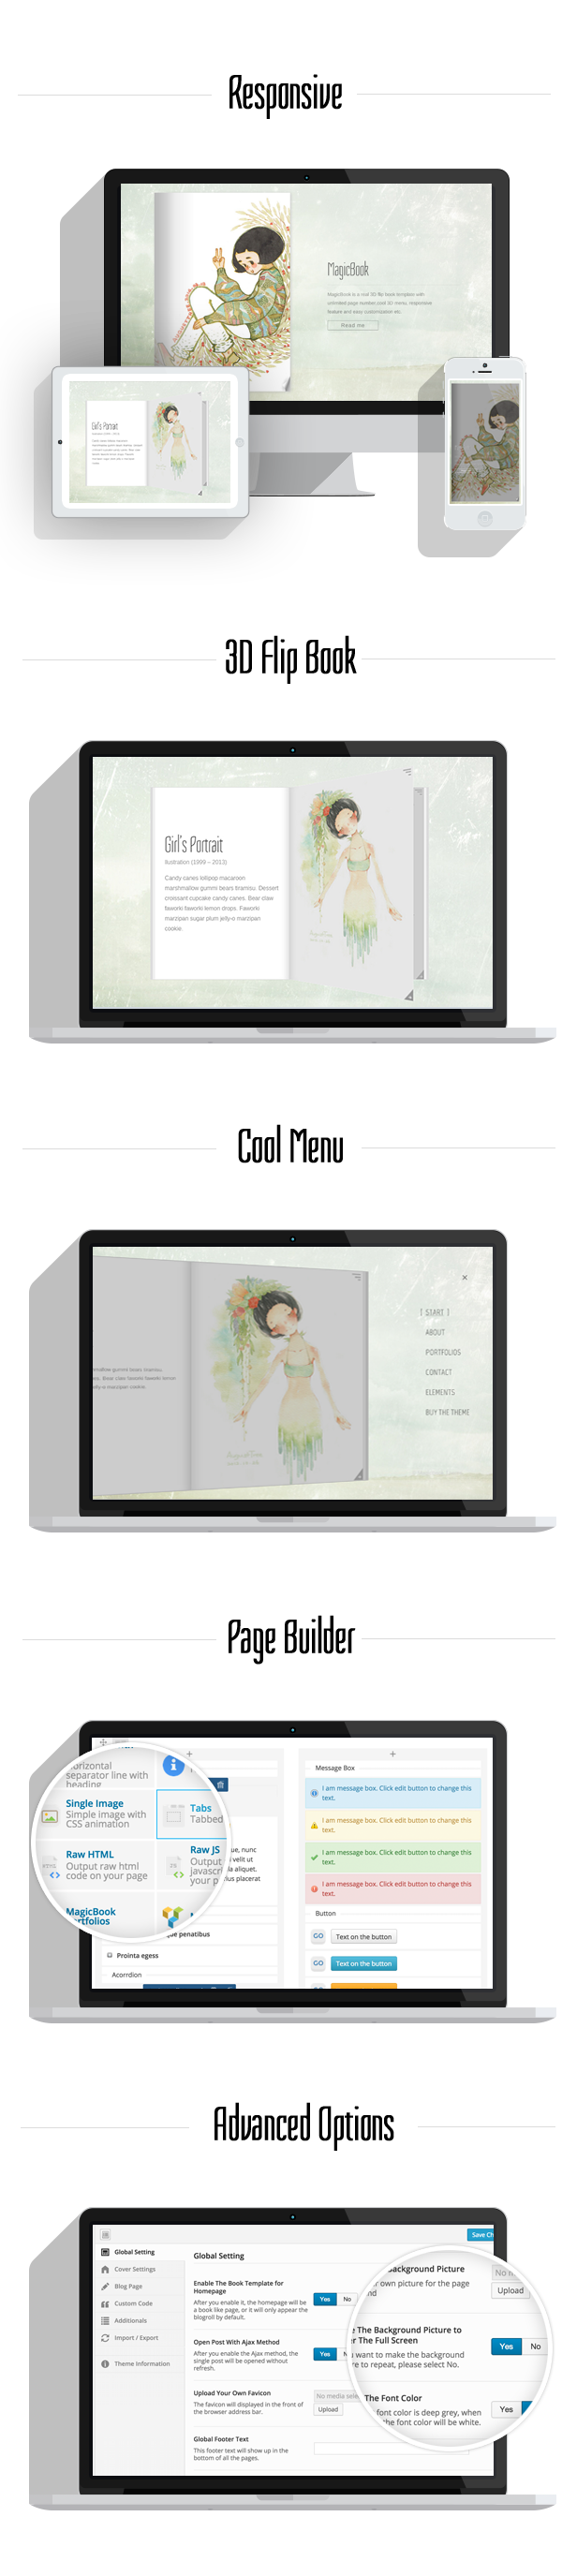 magicbook_features